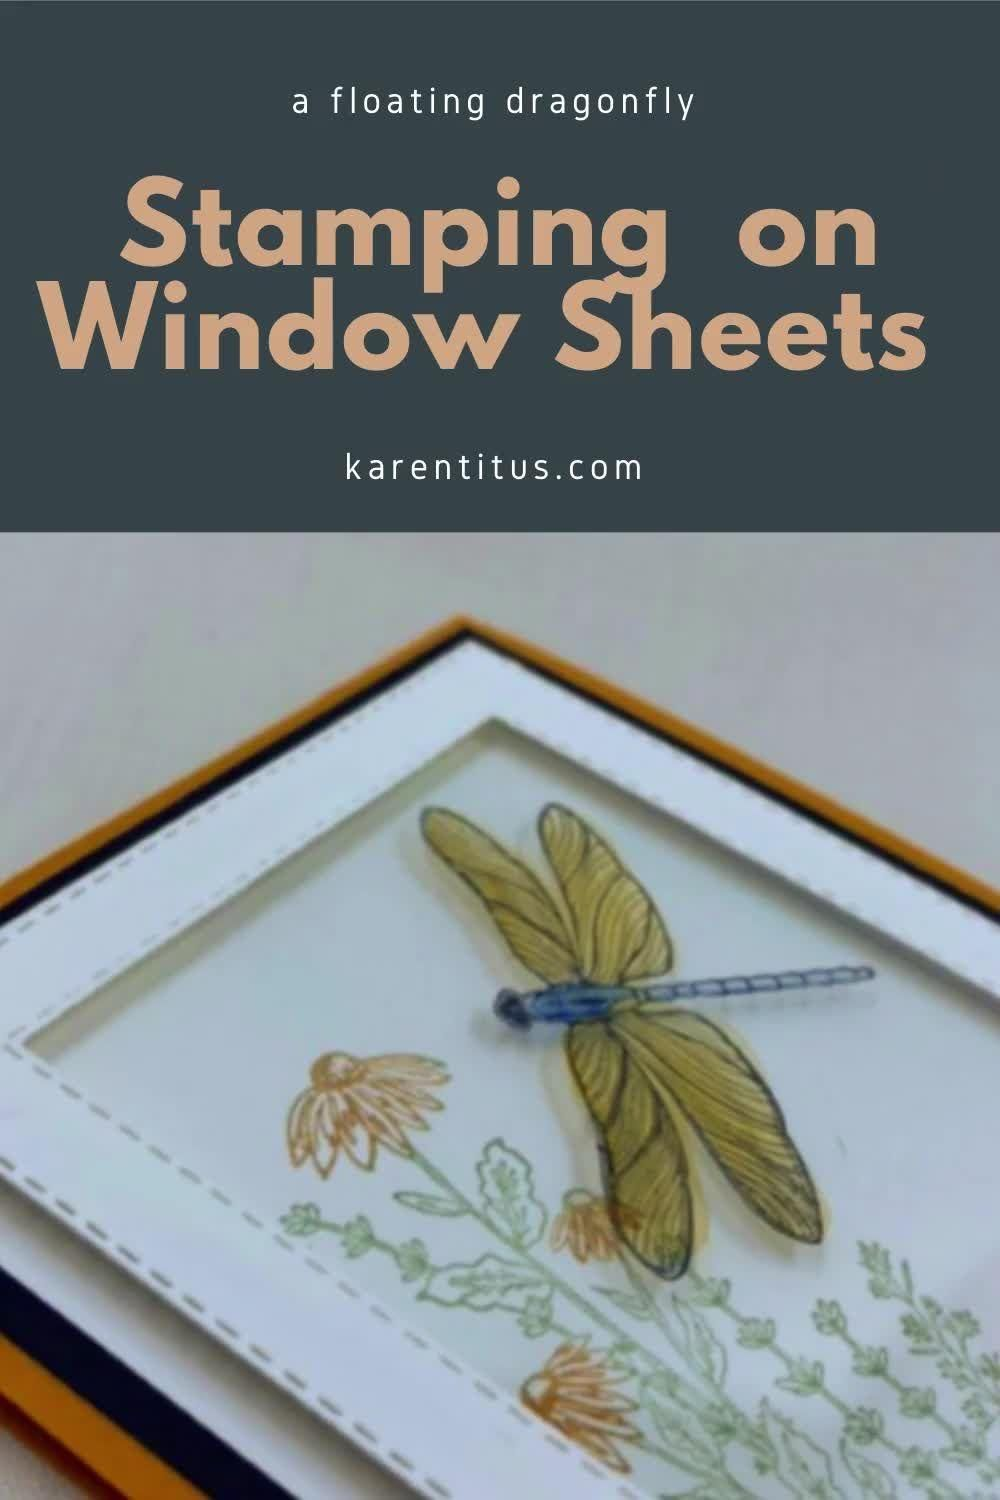 How to Stamp on Window Sheets